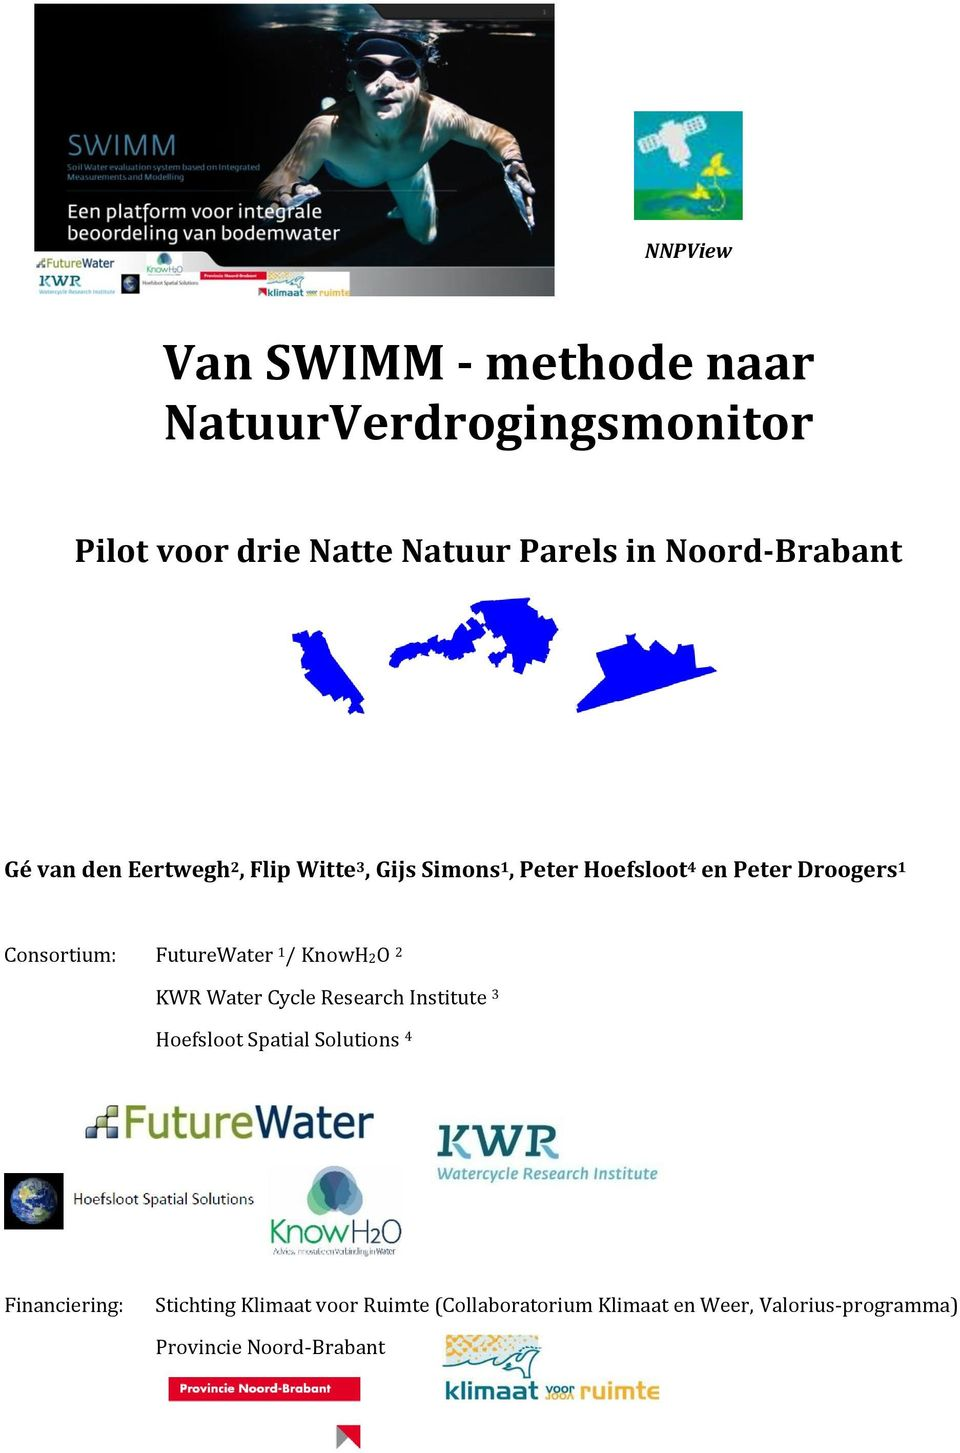 Consortium: FutureWater 1 / KnowH2O 2 KWR Water Cycle Research Institute 3 Hoefsloot Spatial Solutions 4